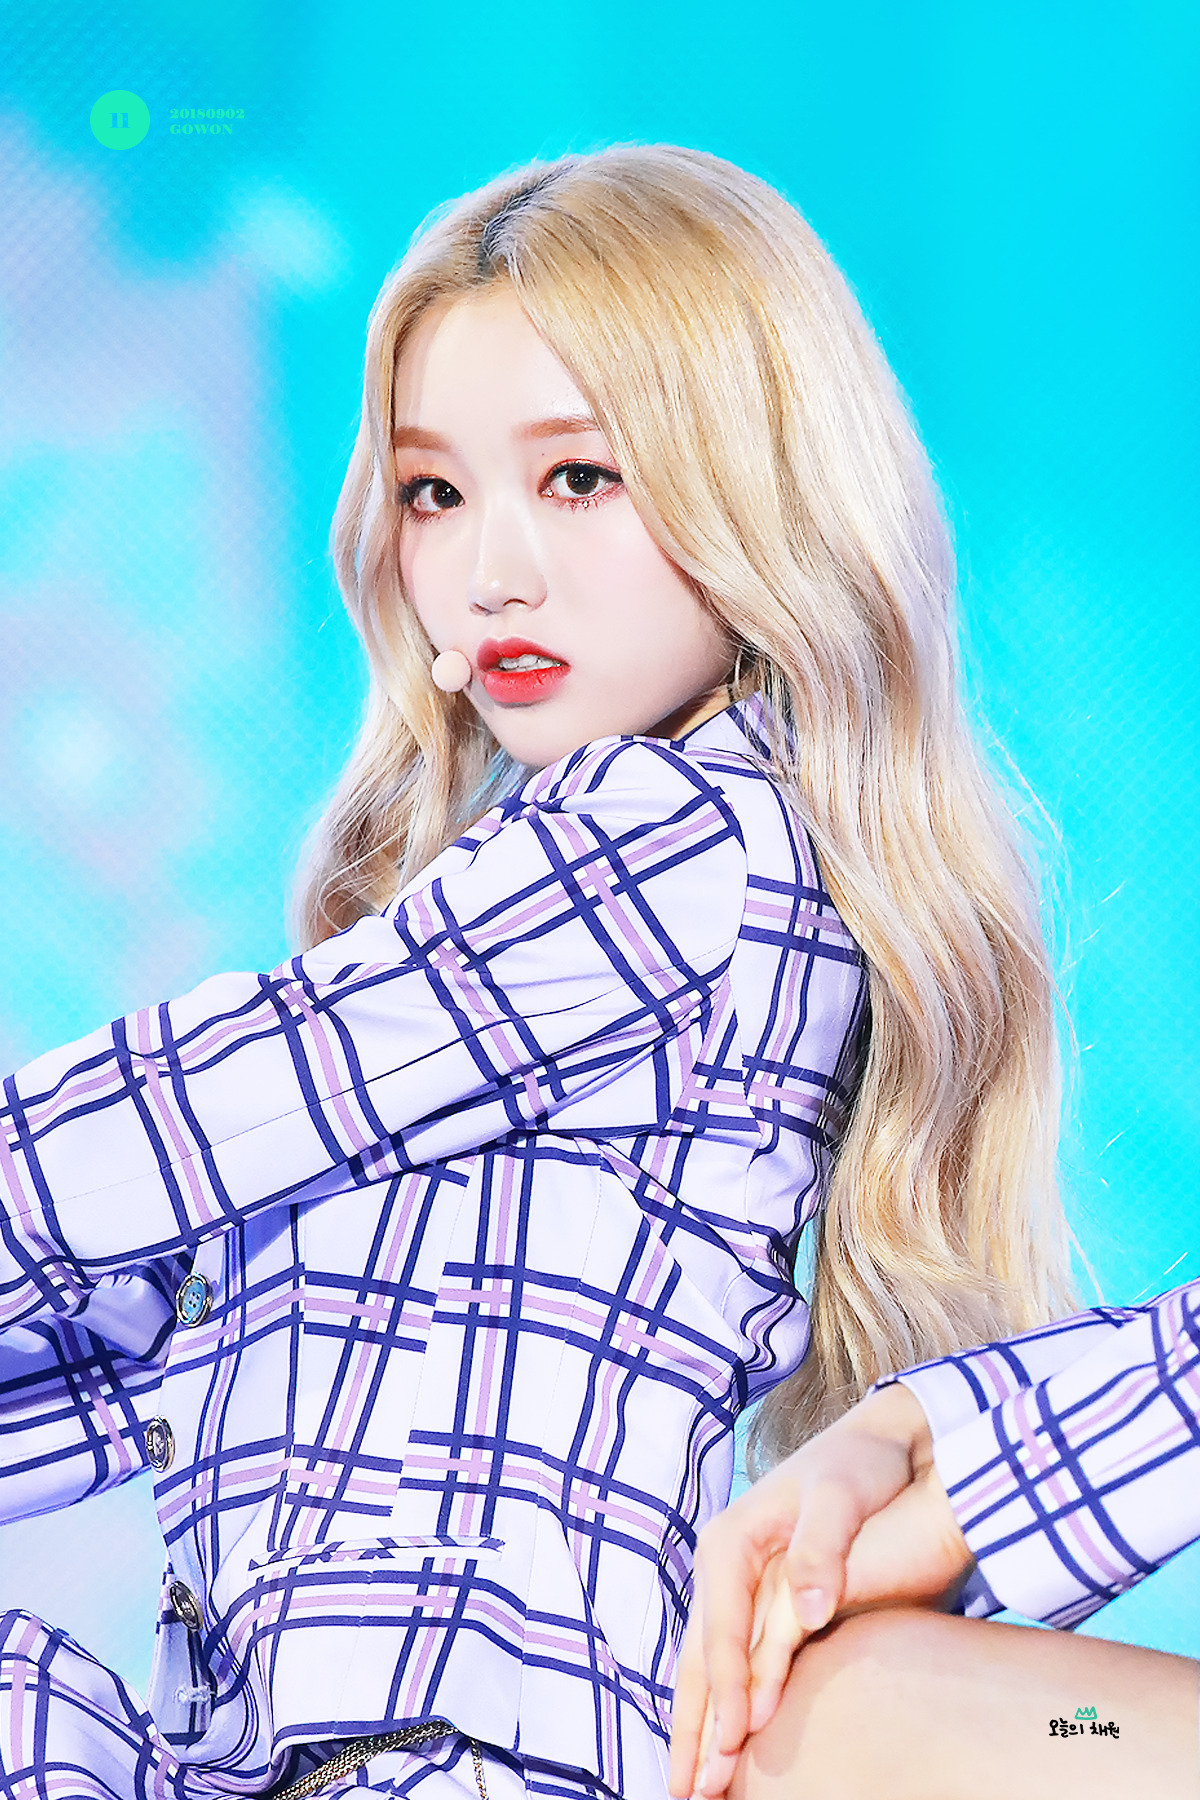 gowon1